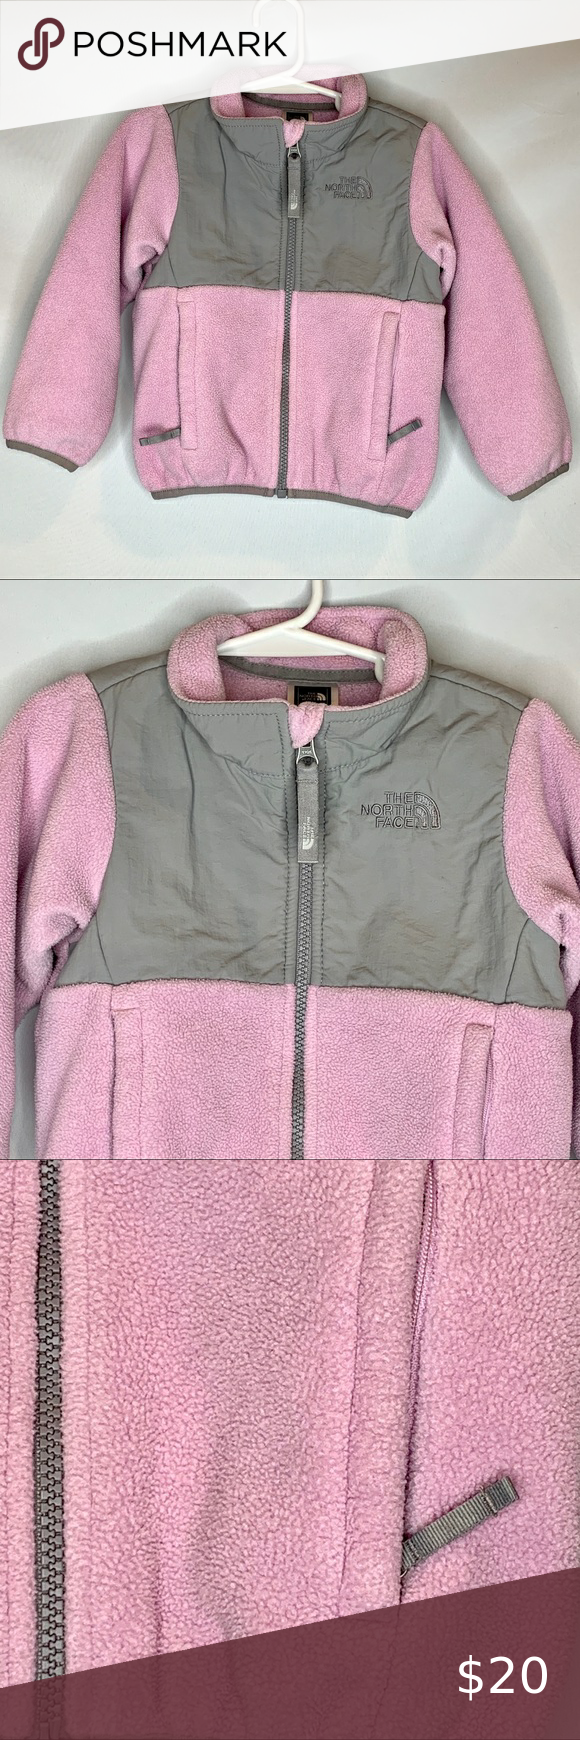 The North Face Toddler Girls Polartec Jacket The North Face Toddler Girls Polartec Fleece Jacket Pink Gray Size 2t Good Co The North Face Toddler Girl Jackets [ 1740 x 580 Pixel ]